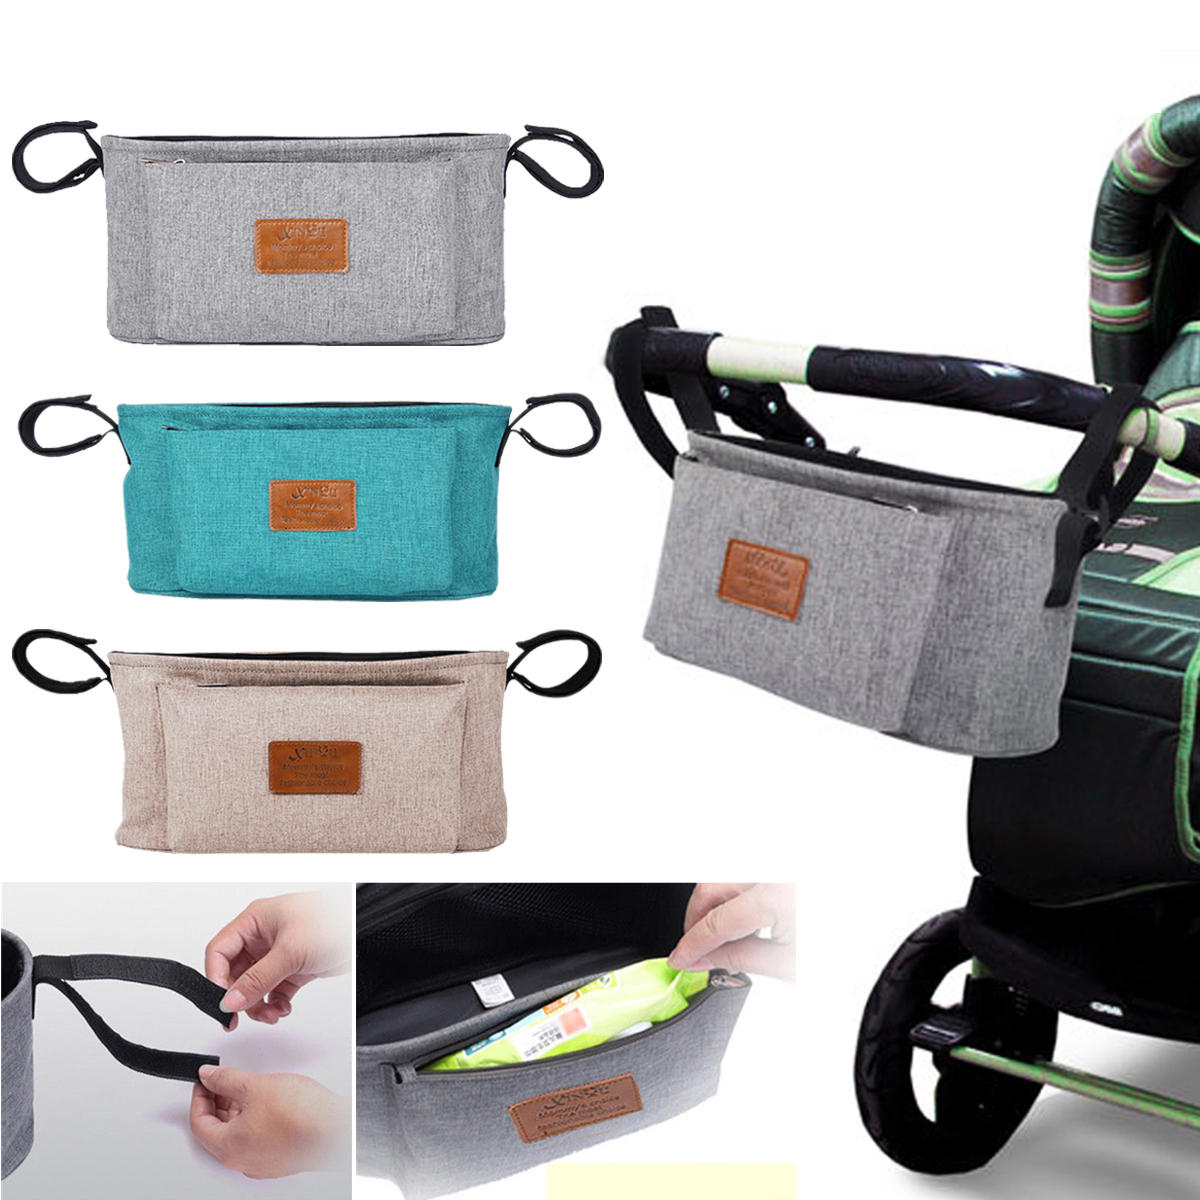 Baby Stroller Sunshade Canopy Cover For Prams Universal Car Seat Buggy Pushchair Cap Sun Hood Stroller Accessories - 2